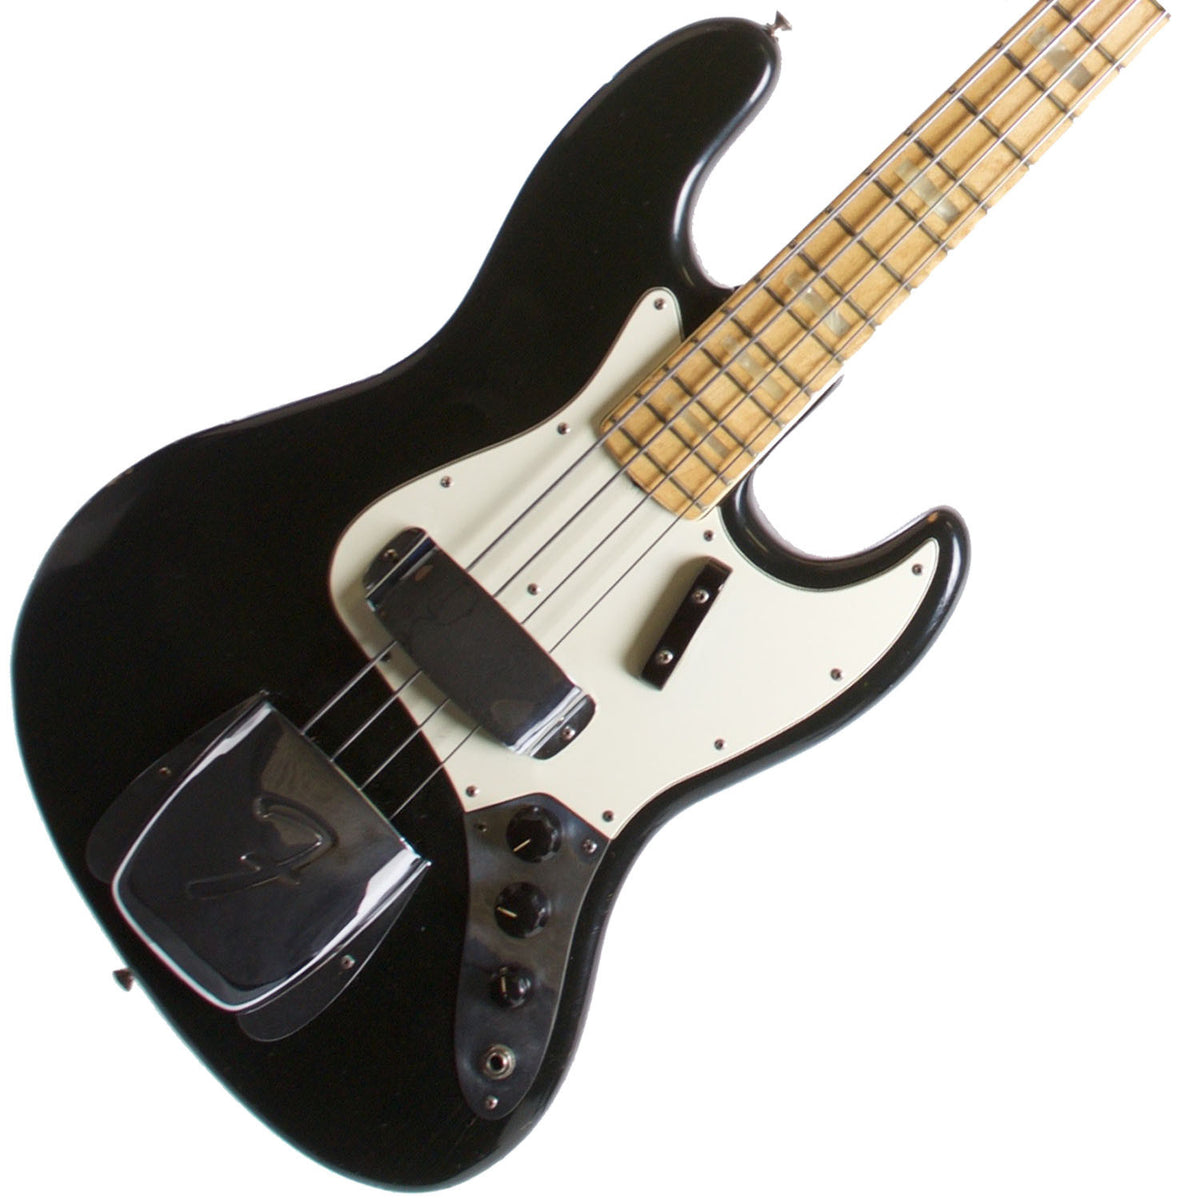 1973 Fender Jazz Bass - Garrett Park Guitars  - 1